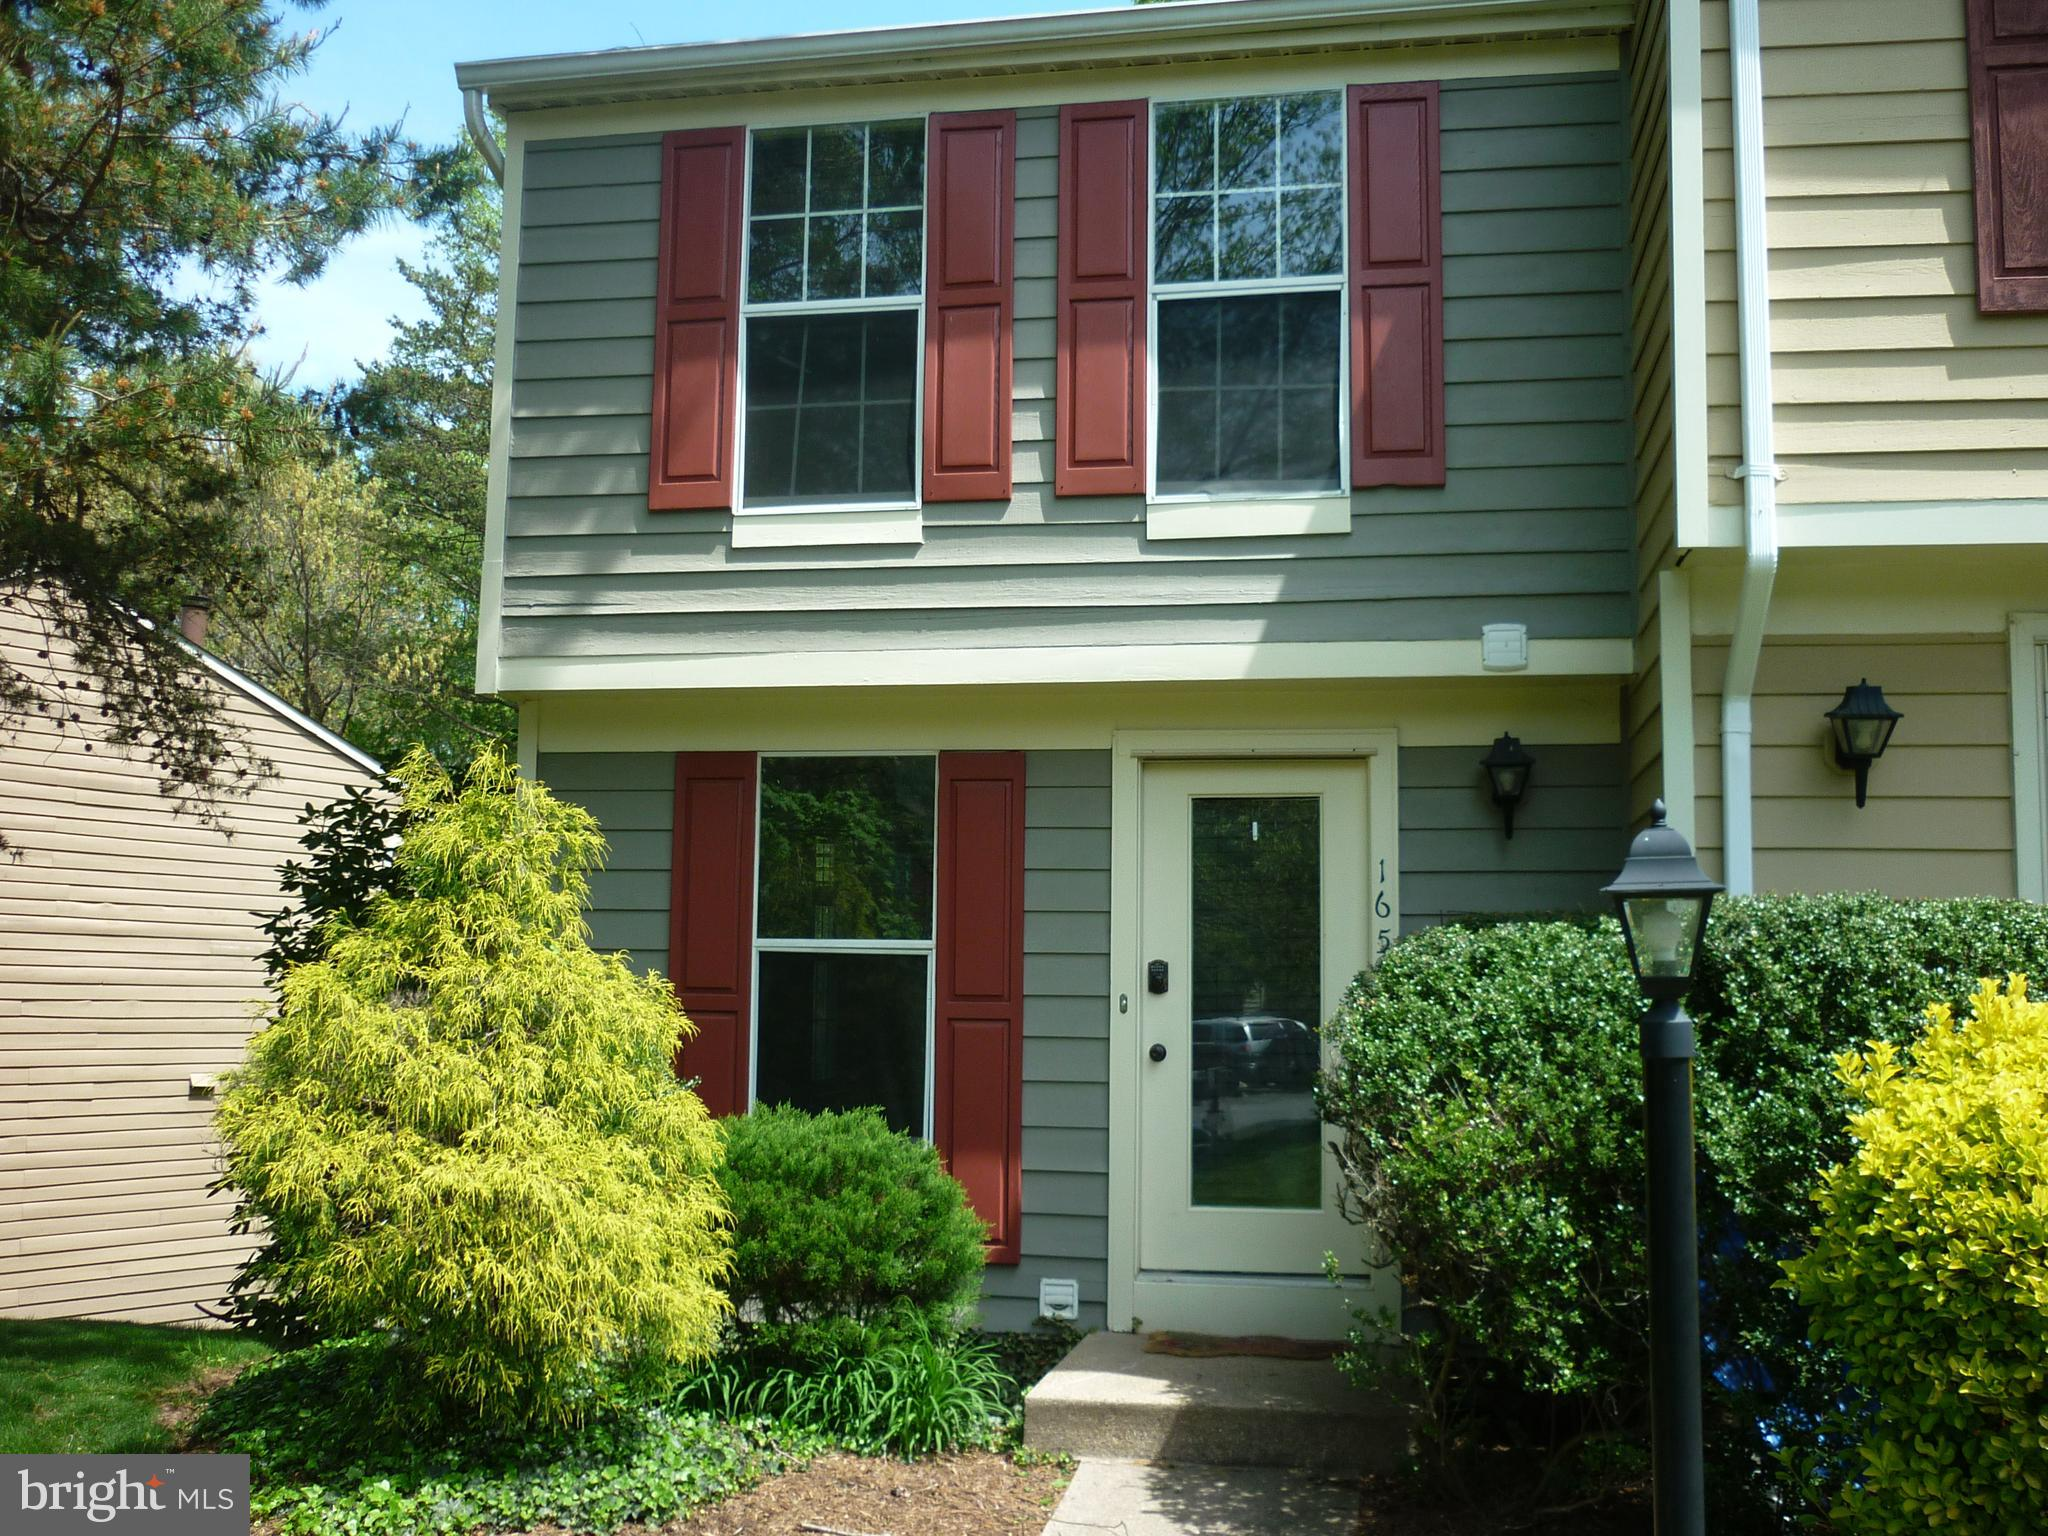 Updated throughout, this  cozy and charming, light filled North Reston townhouse has it all! This end unit  backs to woods with a upper level deck and a lower level fenced in yard. Gleaming hardwoods on main level. Kitchen and baths have been updated. 2 master bedrooms upstairs with a rec room/ 3rd bedroom on the lower level.  Lower level walks out to fenced in yard  backing to  woods.  Two assigned parking spots. Take advantage of all the amenities Reston has to offer. Walking and biking trails, multiple lakes and ponds, tennis courts, ballfields and community swimming pools. This is a bankruptcy. All terms of listing and sale are subject to bankruptcy court approval. Property is in  good condition but will be sold completely as-is.  Contact agent for info on writing a contract.